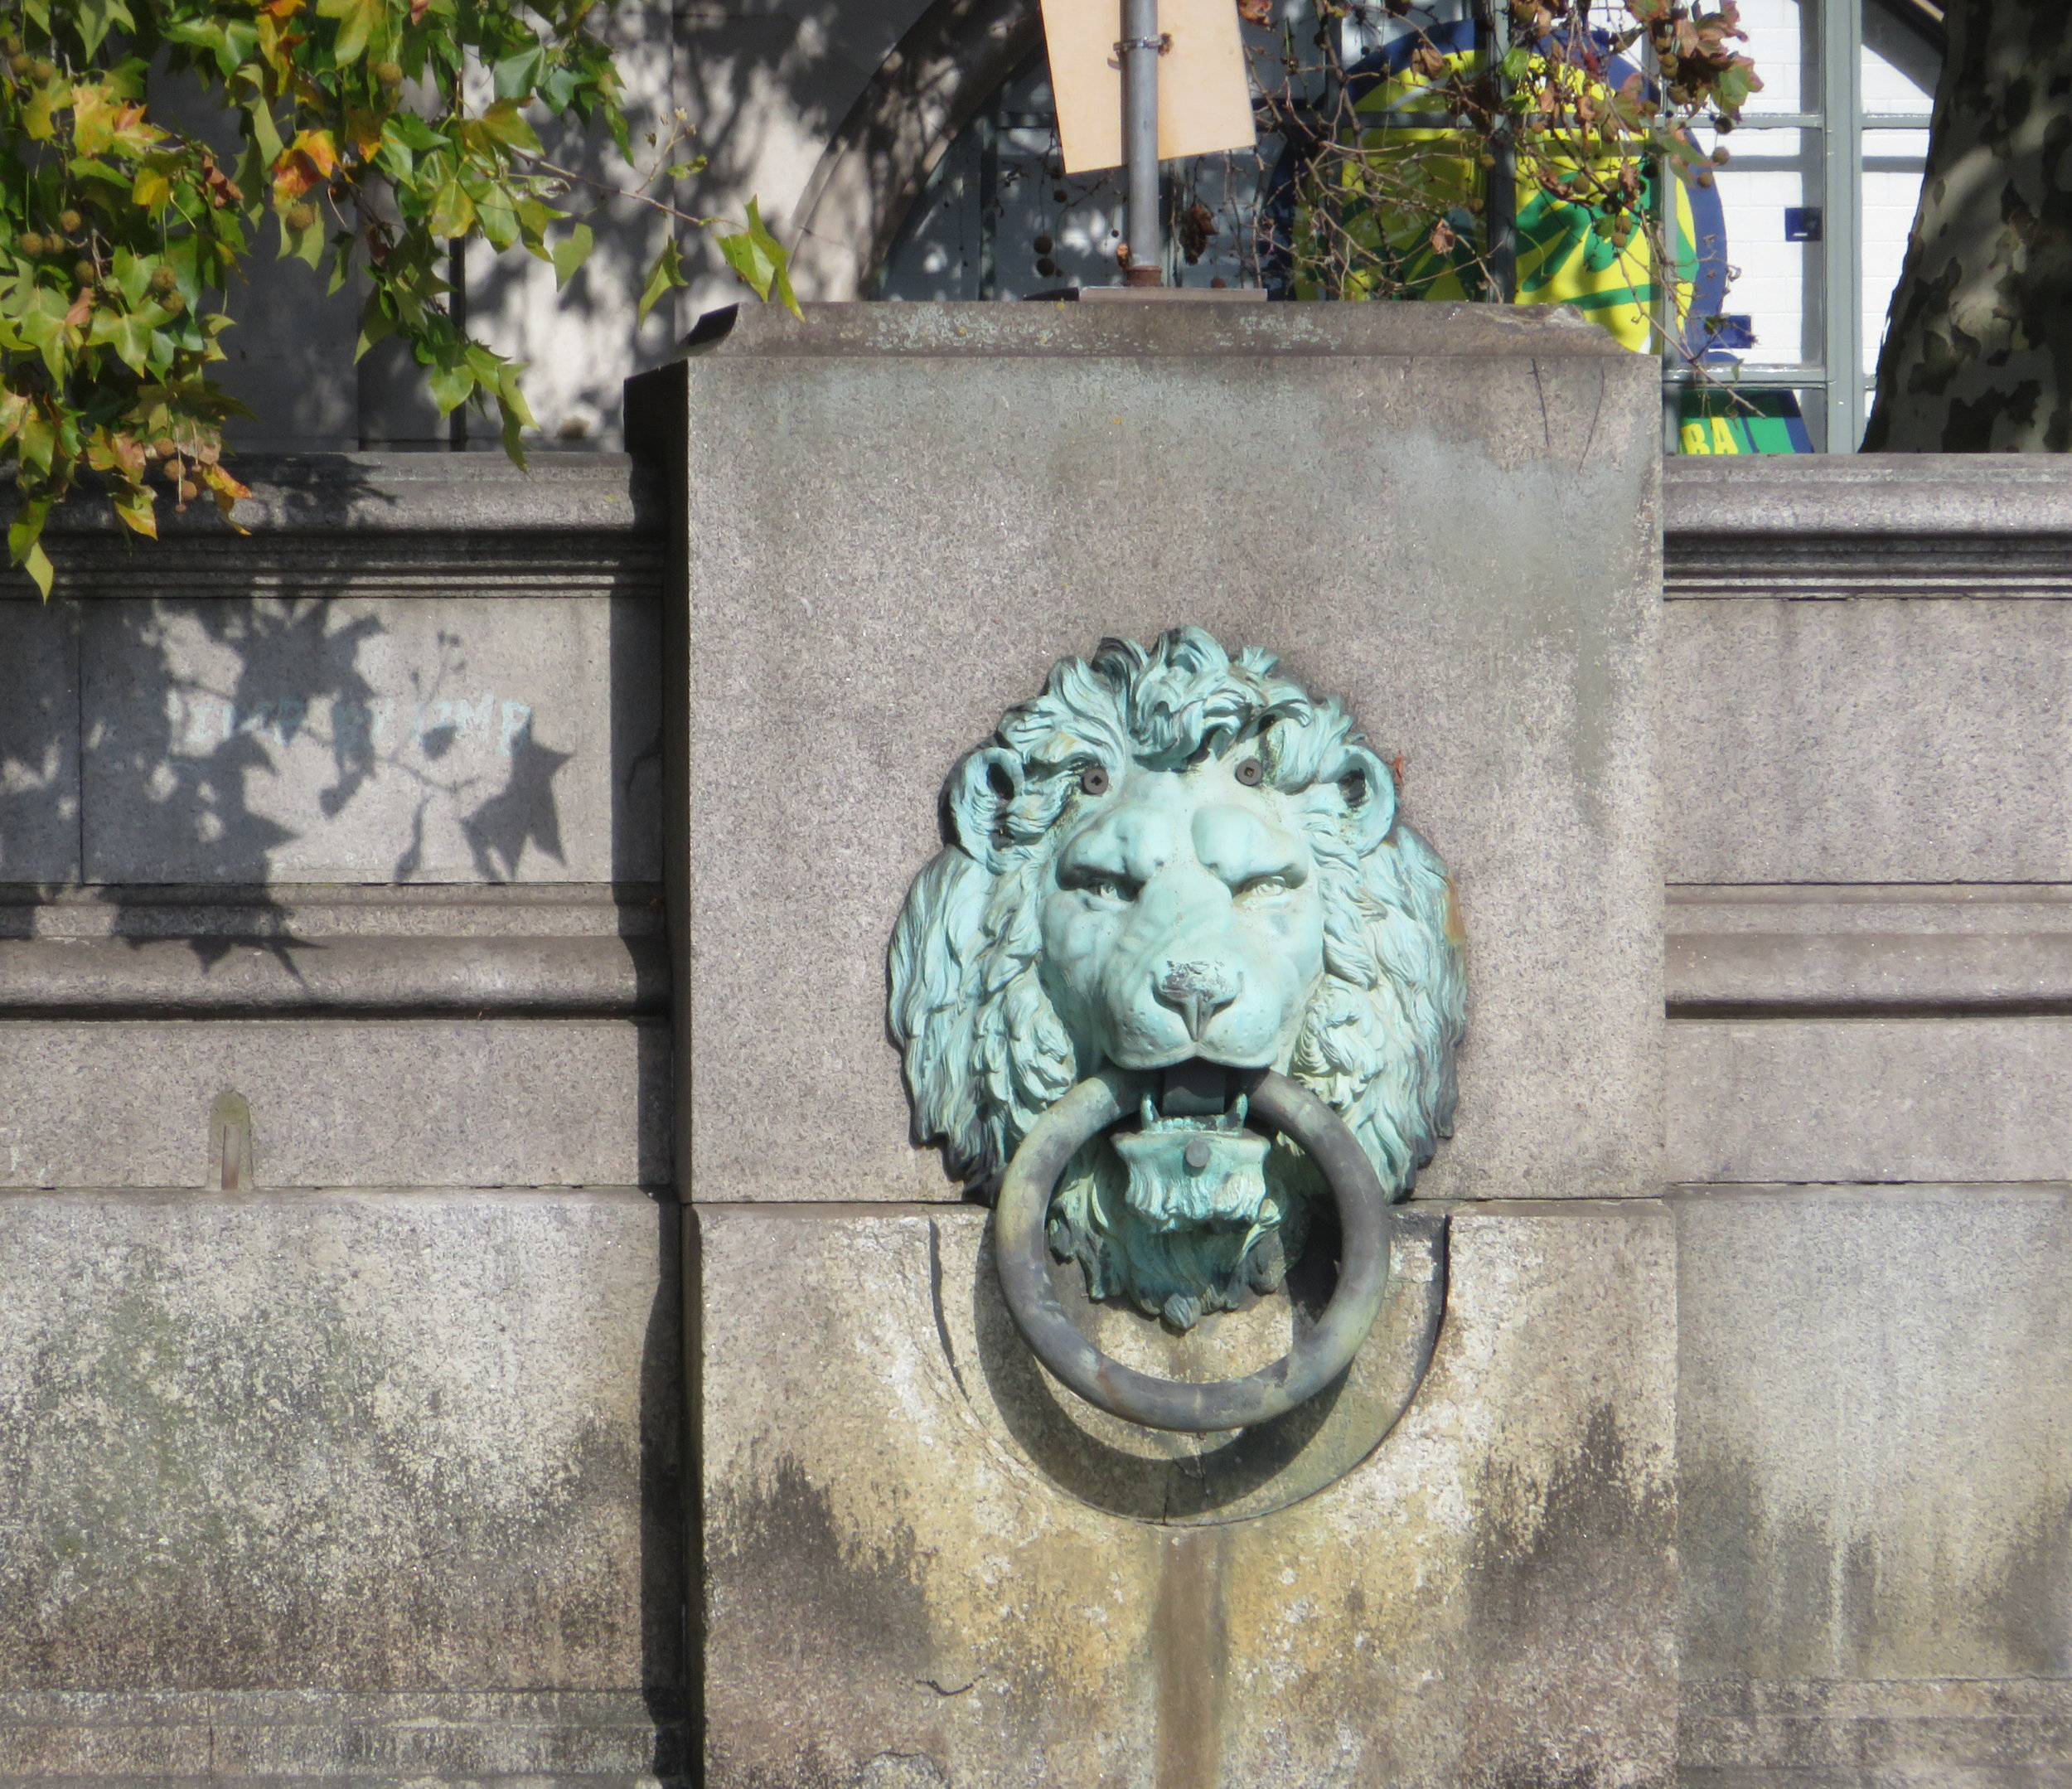 Handsome, verdigris lion's head mooring rings line the Victoria Embankment and though the moorings were evidently seldom used, a London rhyme about the rising of the river is still recited … 'When the lions drink, London will sink. When it's up to their manes, we'll go down the drains.'